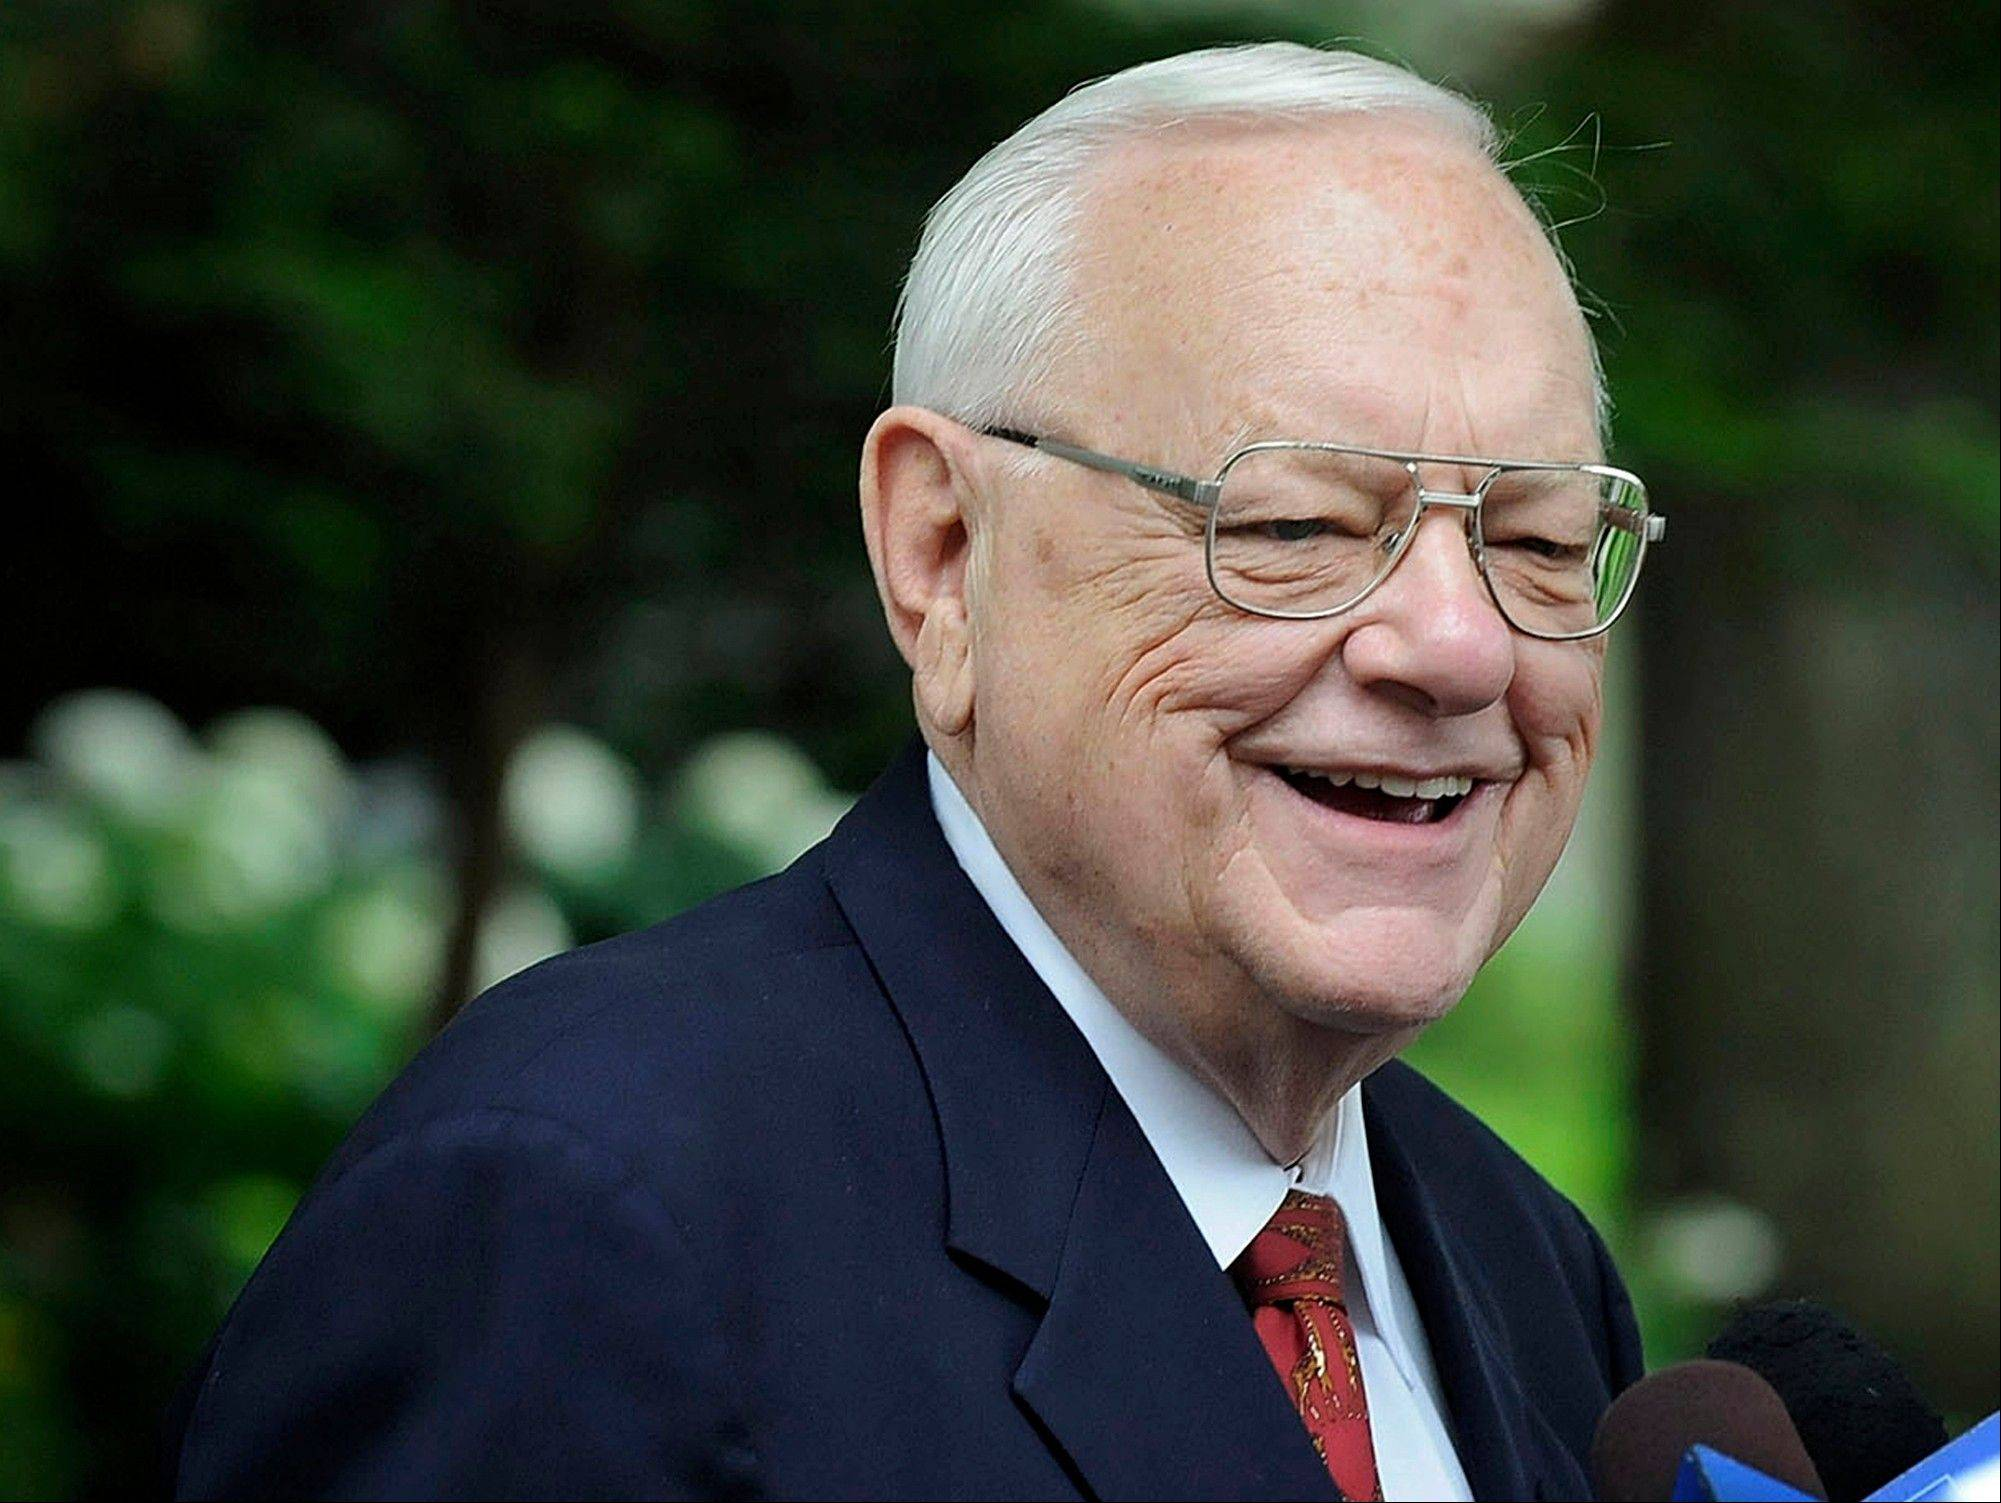 Former Gov. George Ryan is working on a memoir as he adjusts to private life.